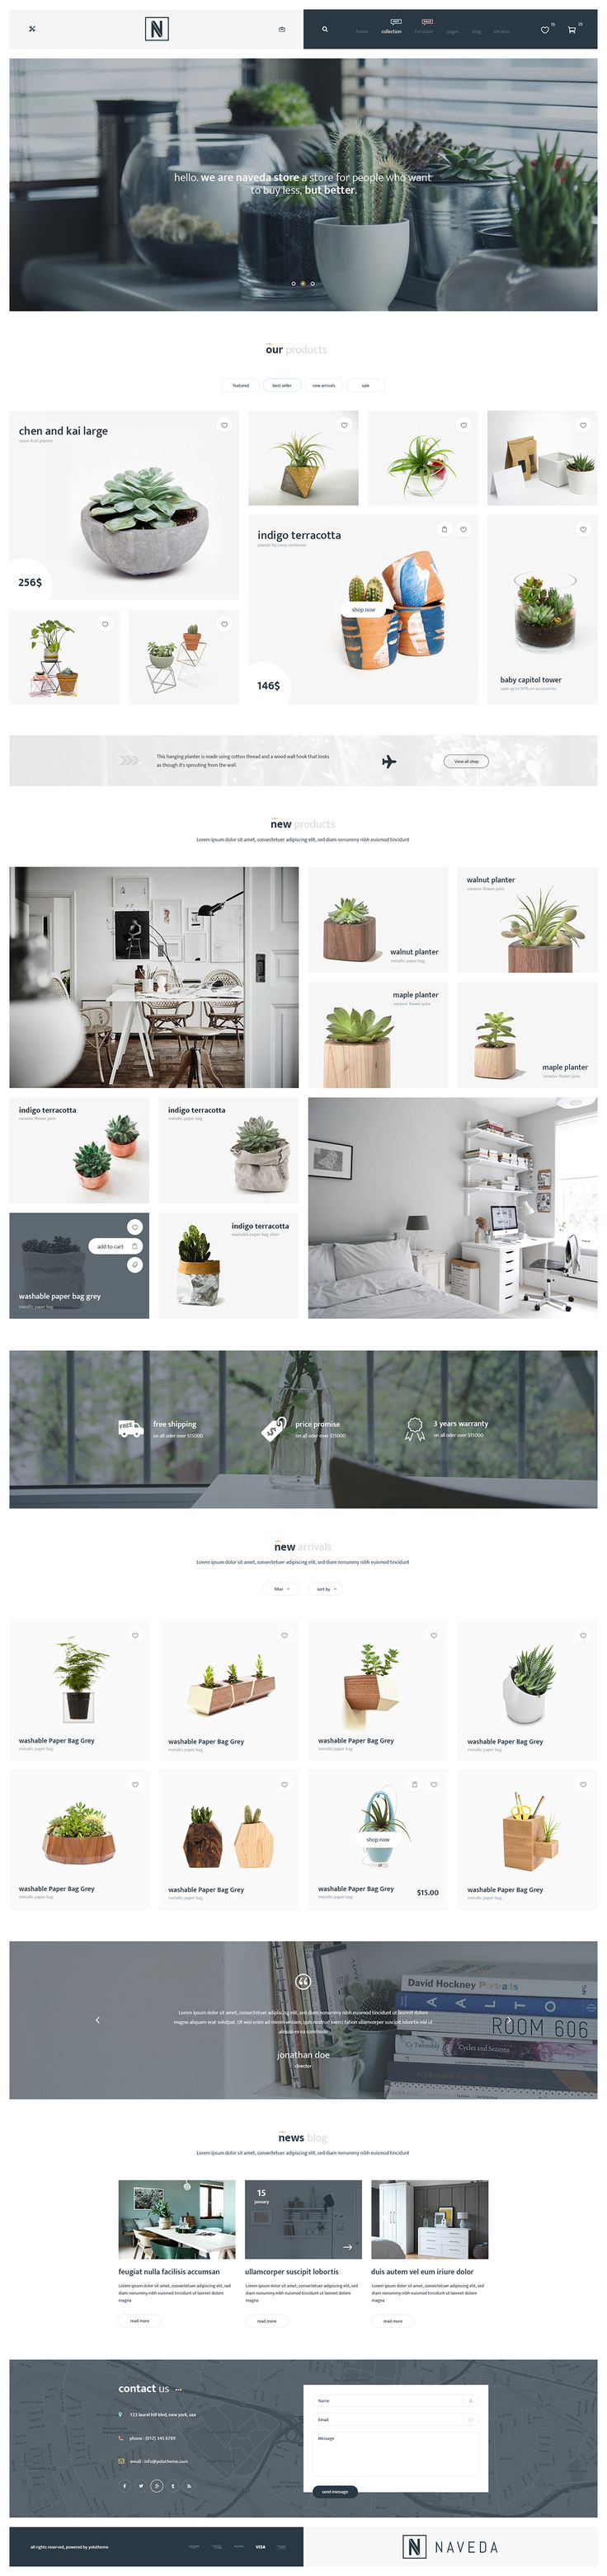 Pin by WEBWORKS Agency on Web Design Pinterest